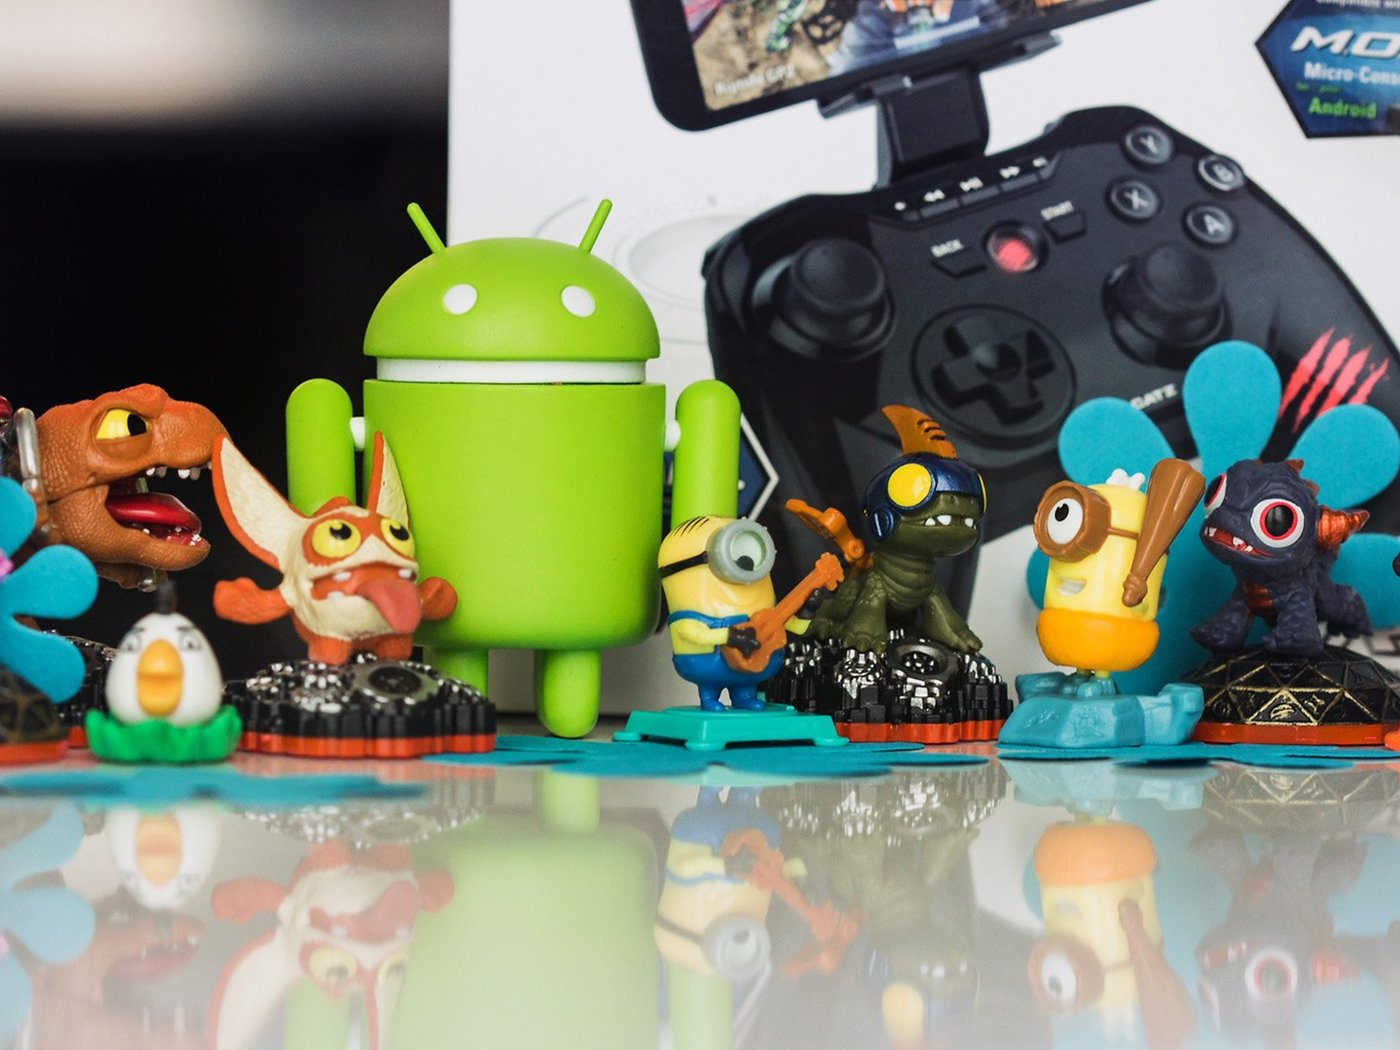 The upcoming Android games we can't wait to play this year